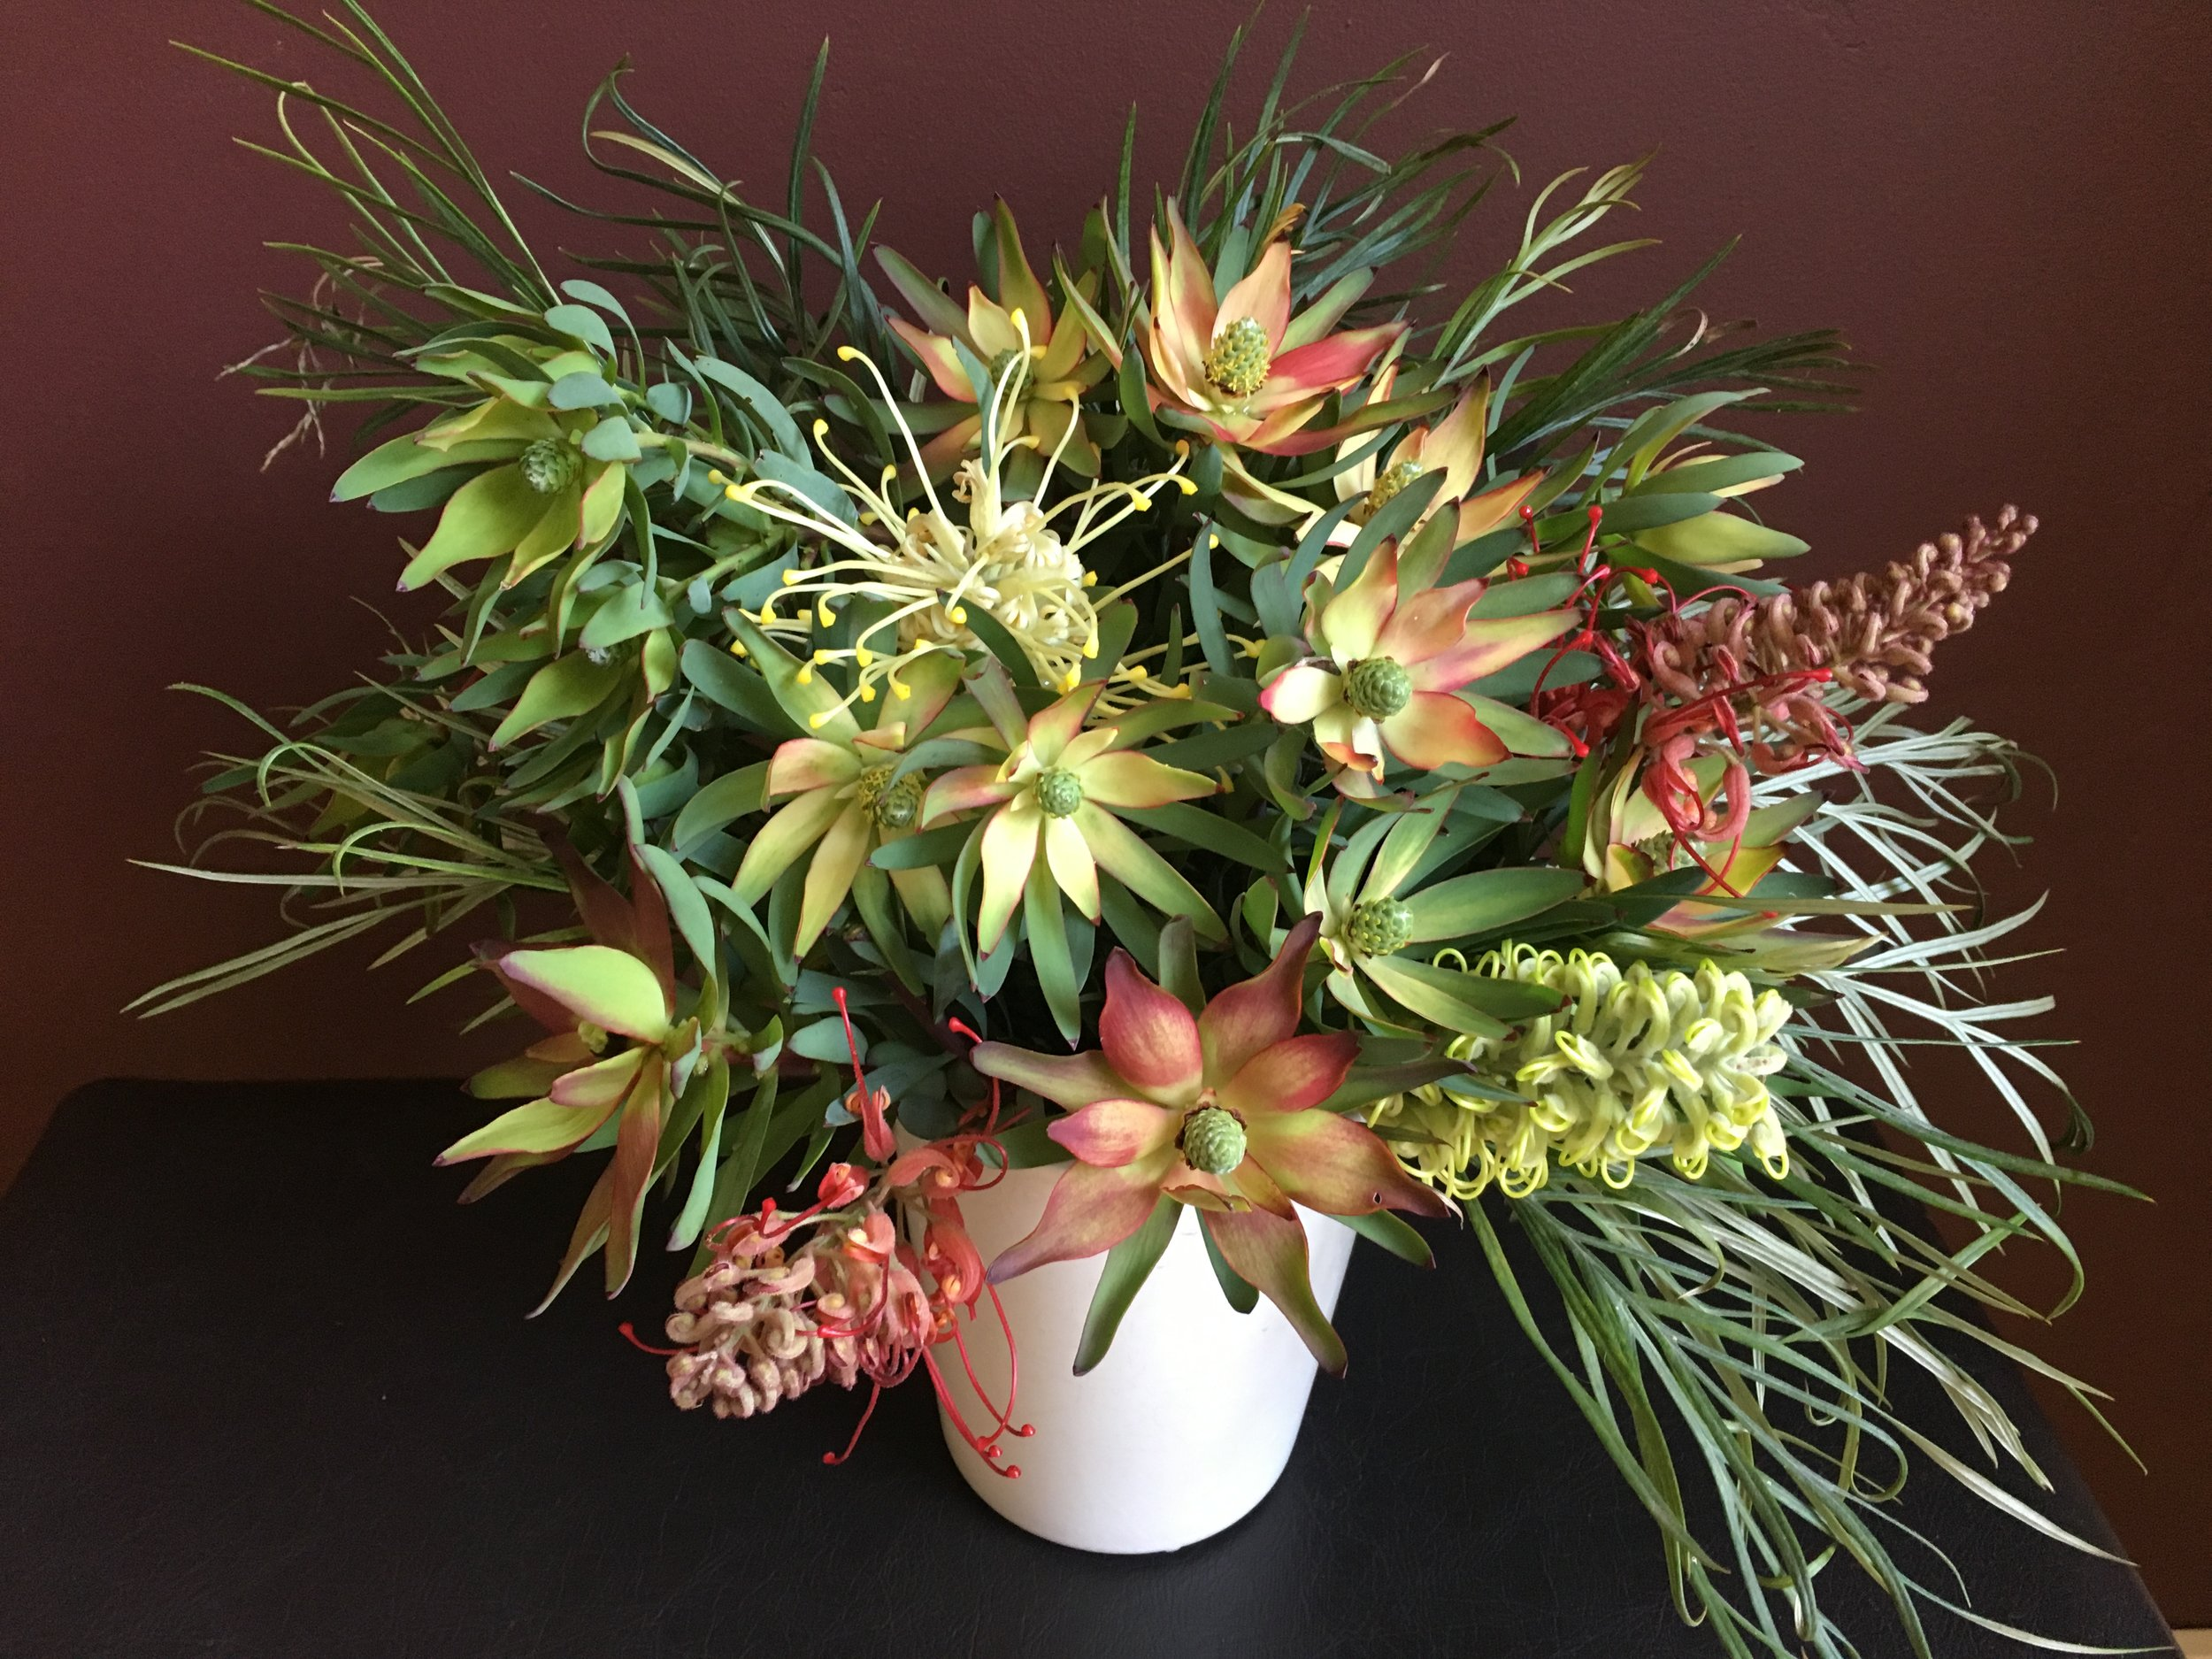 And the Sunday bouquet for church: 'Robyn Gordon' grevillea, 'Moonlight' grevillea and 'Blush' leucadendron.